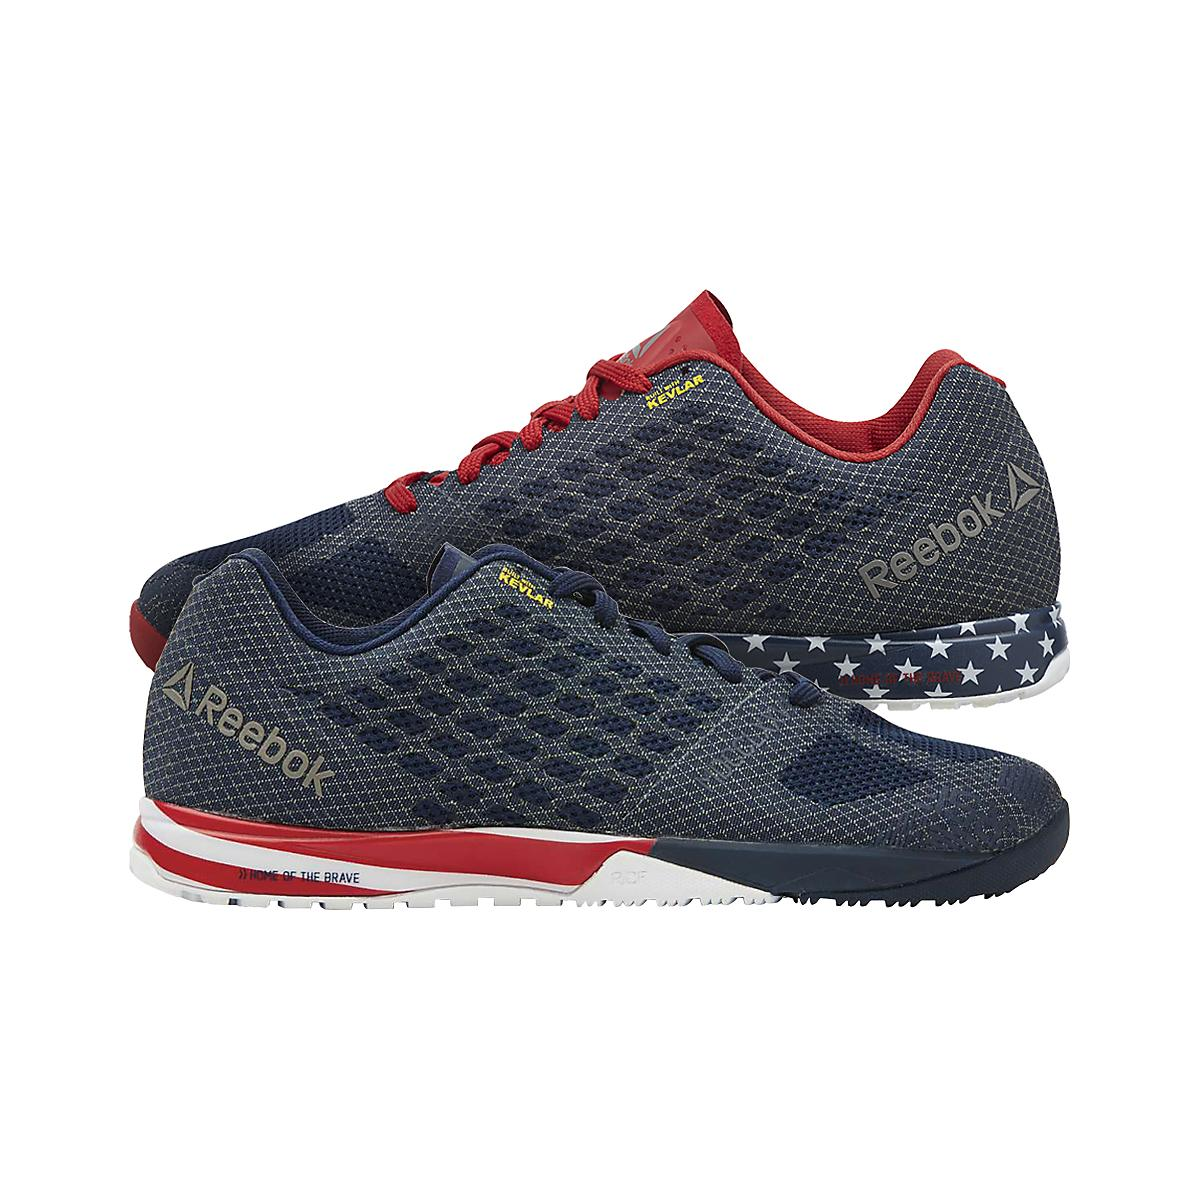 mens reebok crossfit nano 5 0 cross training shoe at road runner sports. Black Bedroom Furniture Sets. Home Design Ideas